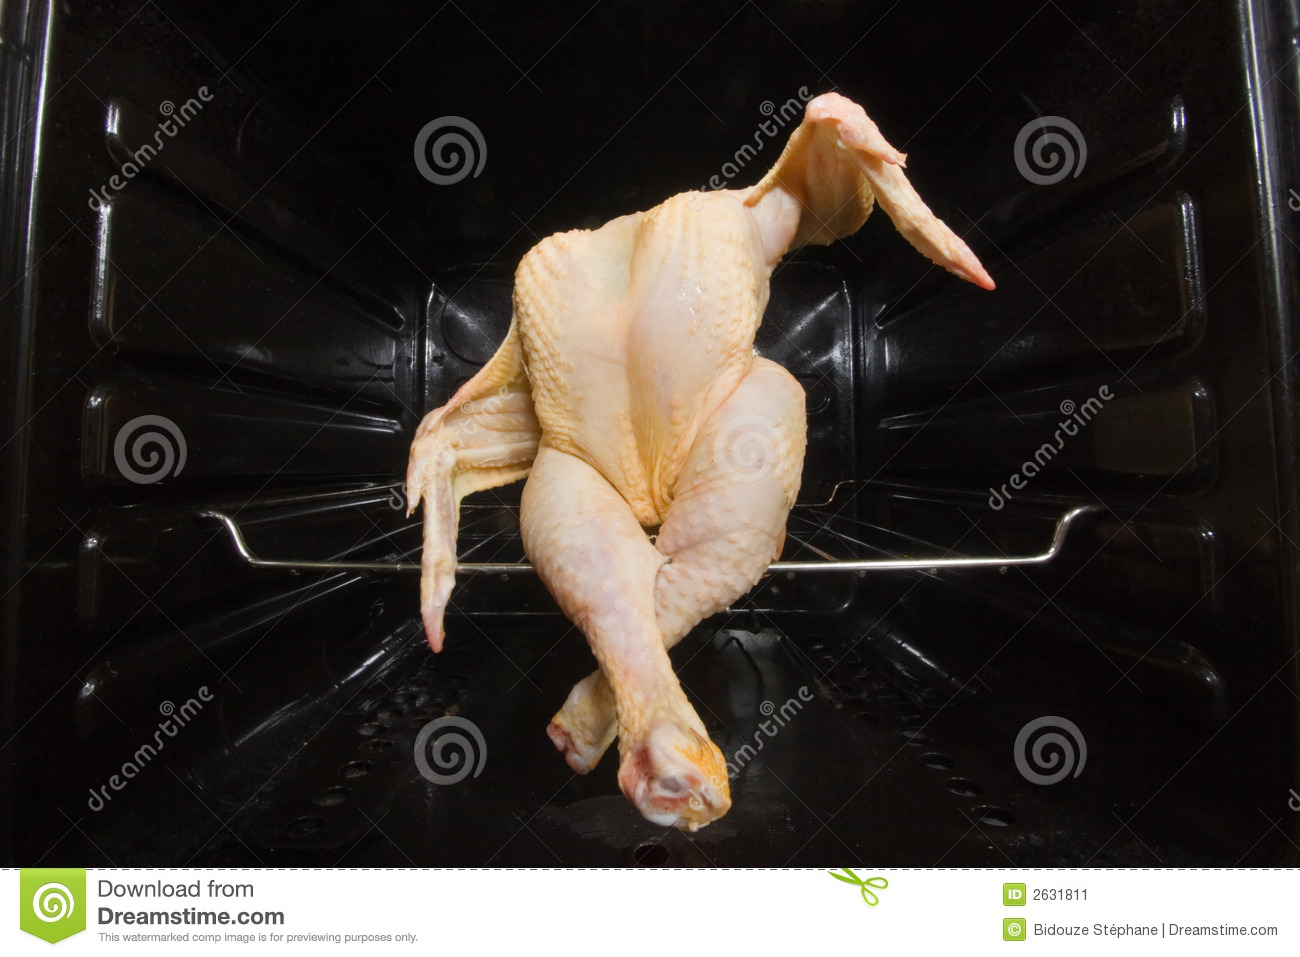 dancing chicken stock image image of imperfect sitting 2631811